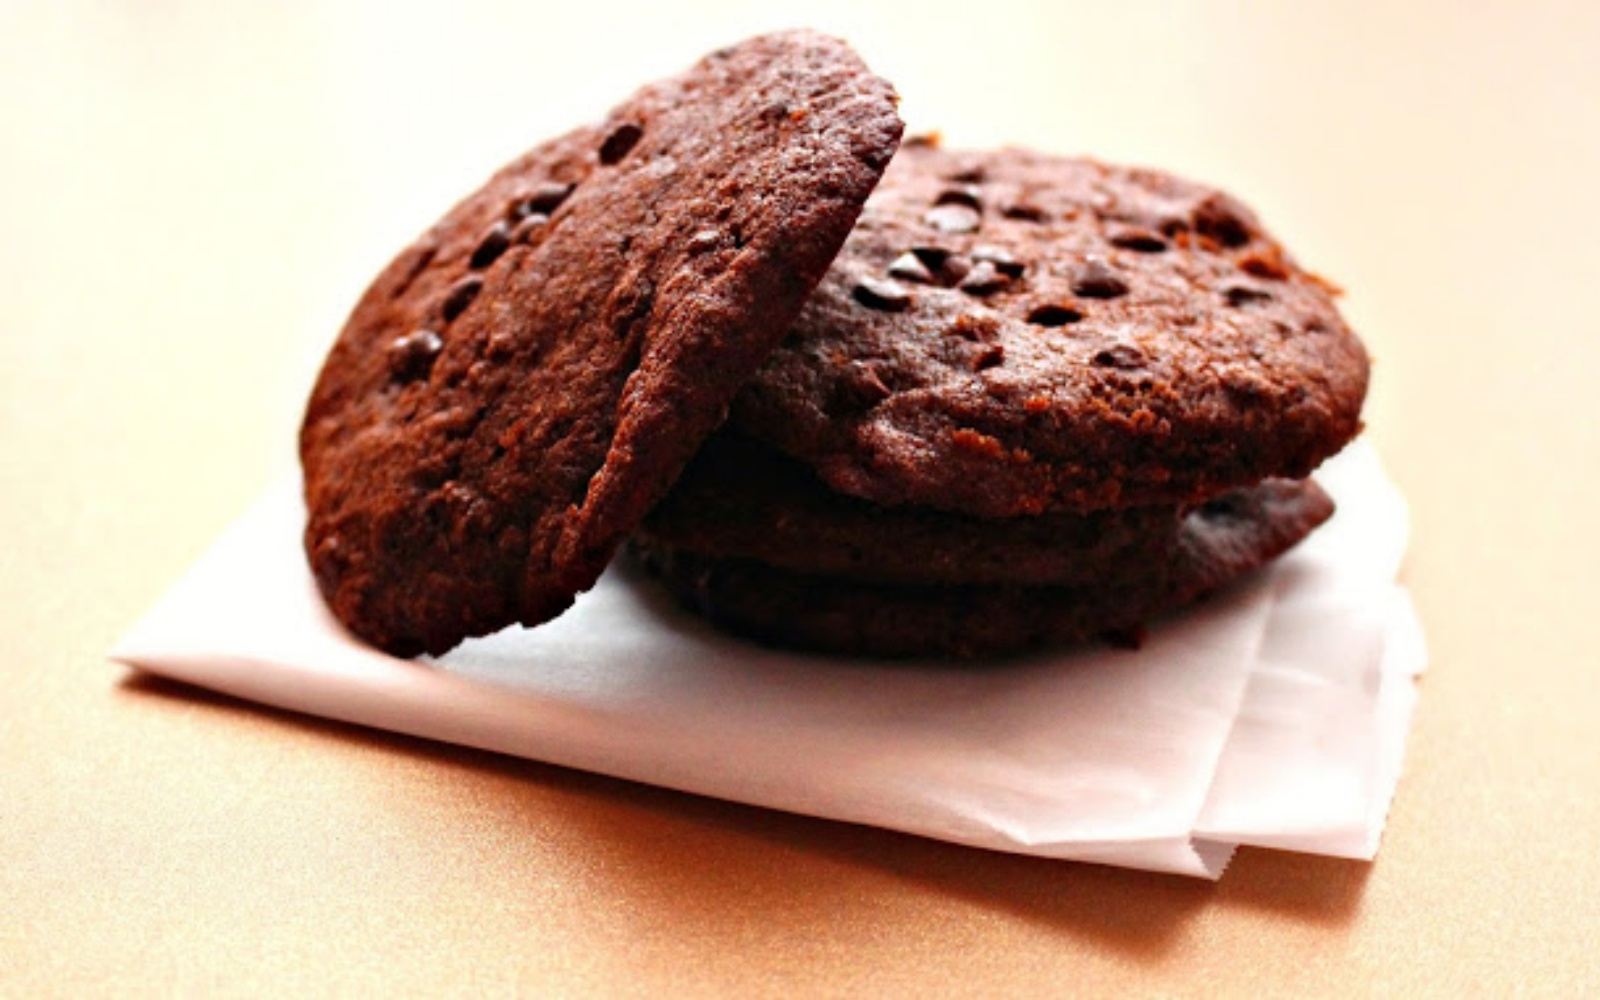 Soft baked double chocolate gingerbread cookie